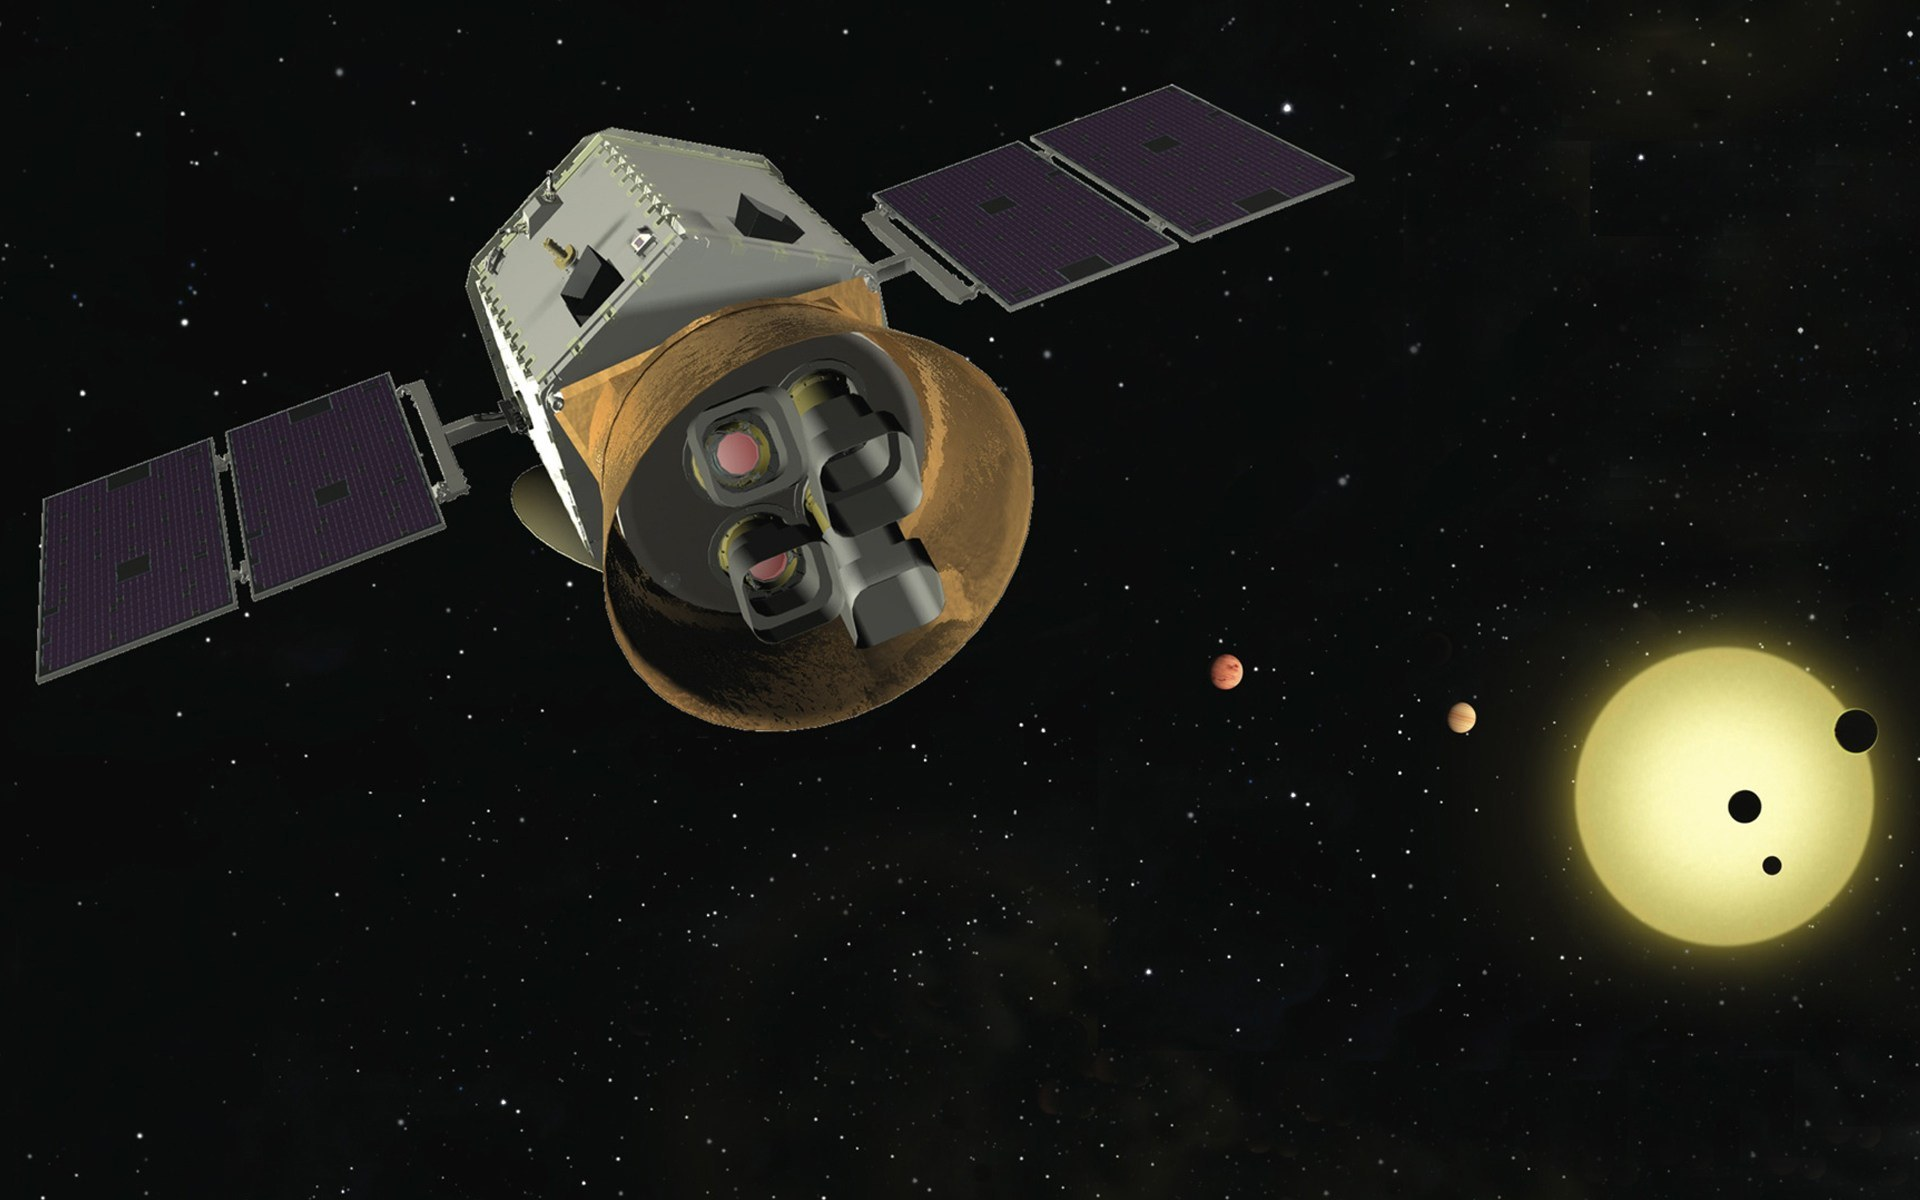 tess telescope From there, astronomers will follow up tess's discoveries using ground-based telescopes as well as other space telescopes such as the future james webb space telescope.